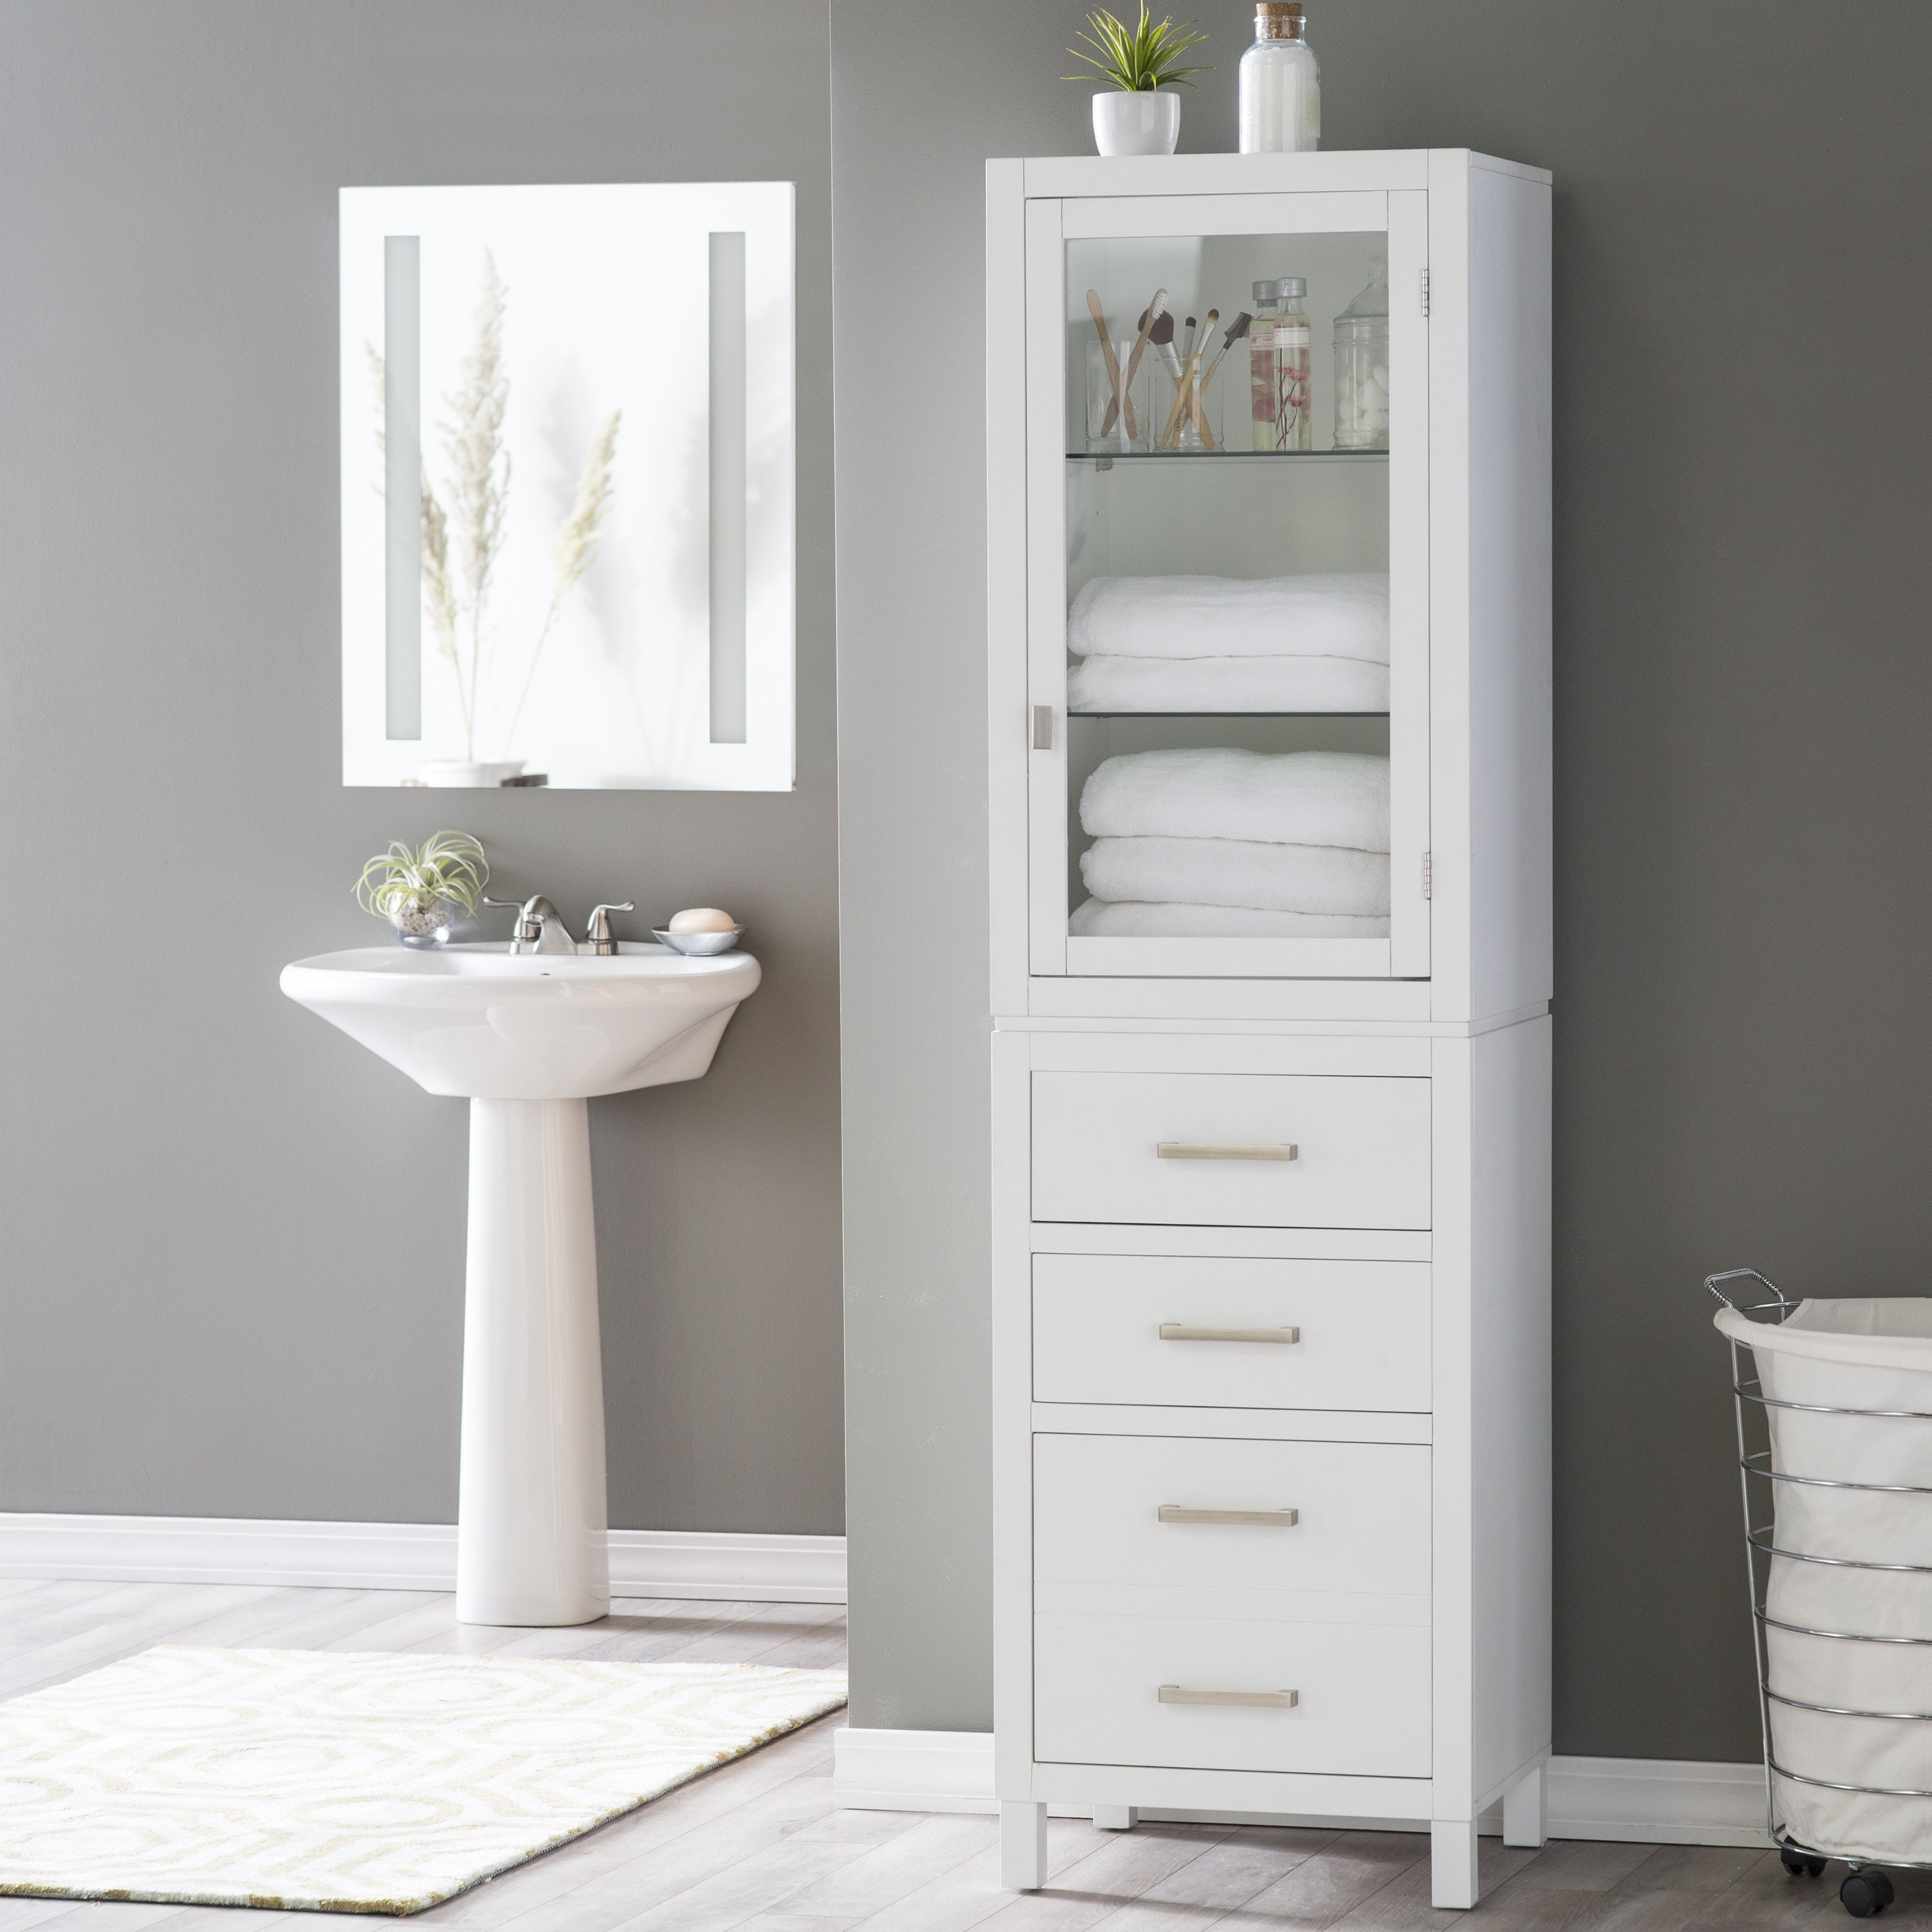 Tall Bathroom Corner Cabinets With